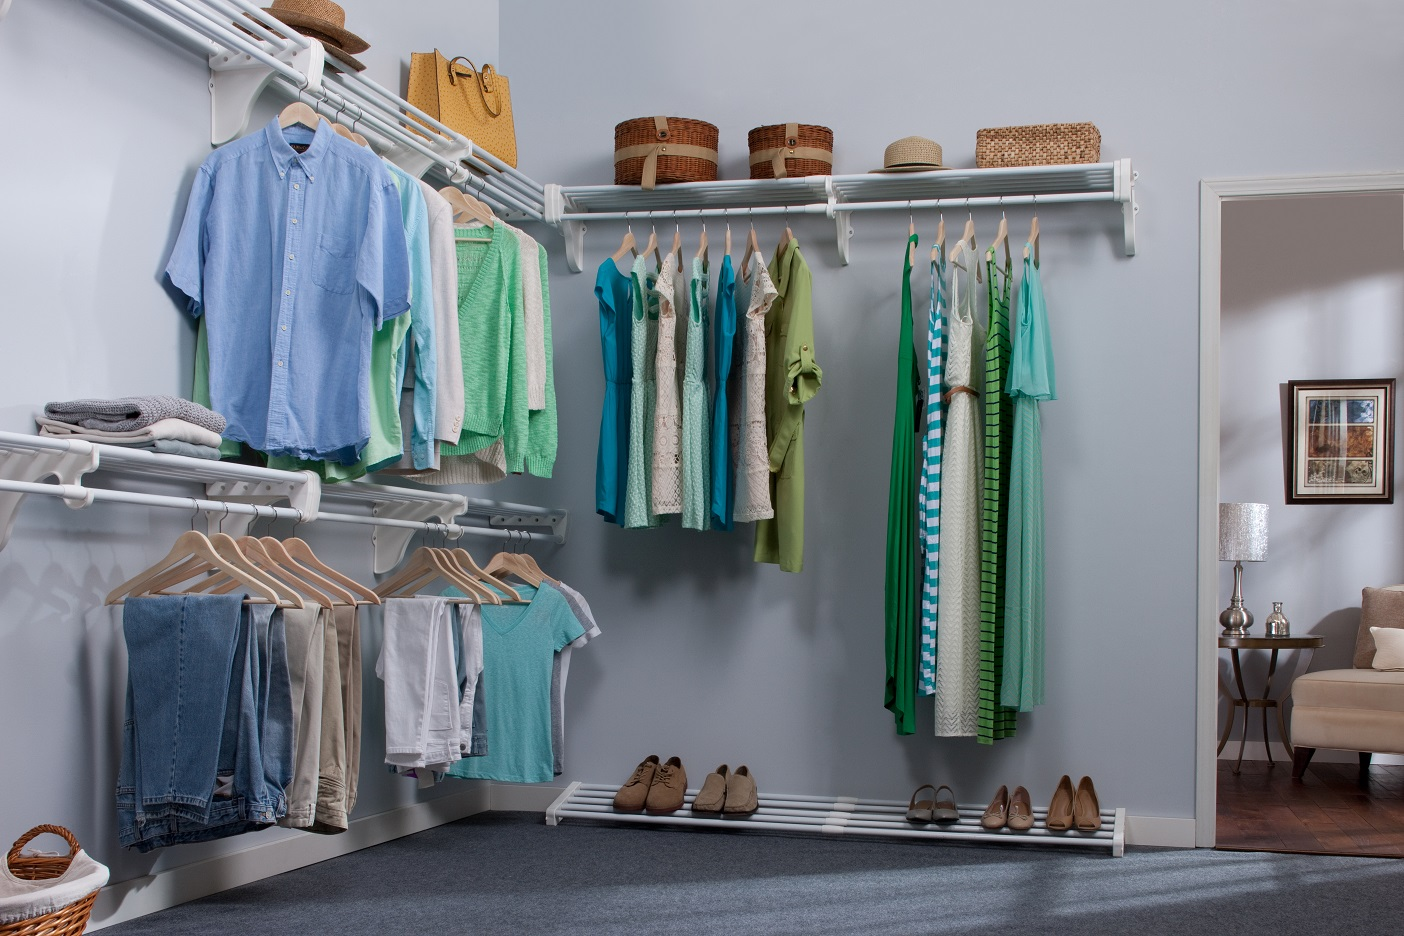 Home Depot Online Is Now Selling Ez Shelf Closet